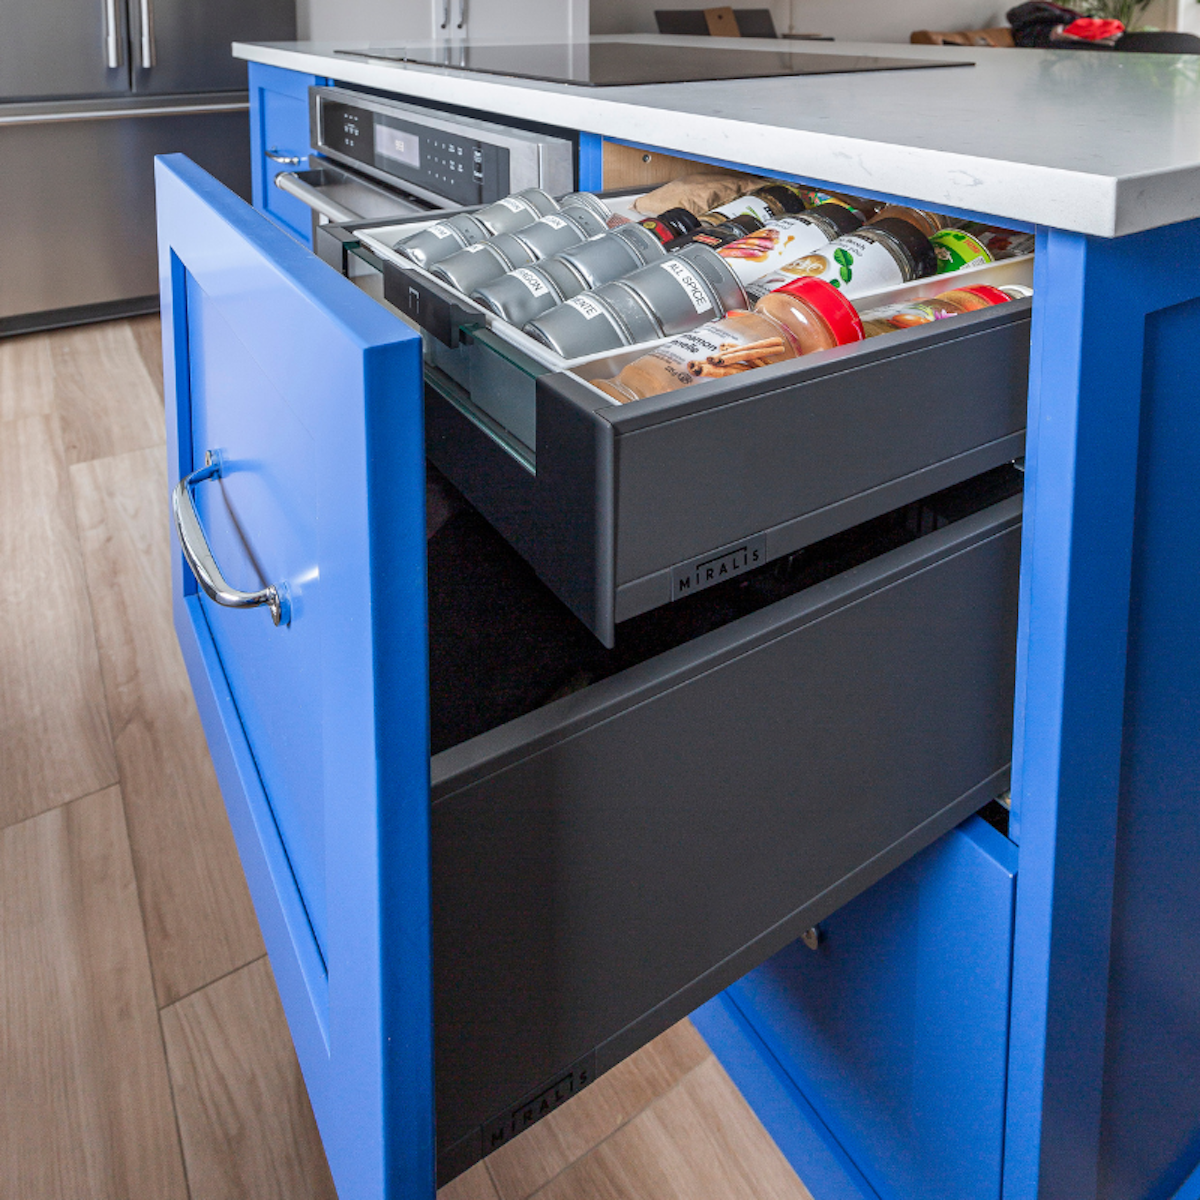 blue-kitchen-spice-drawer-hb-design-inc-montreal-ca-3